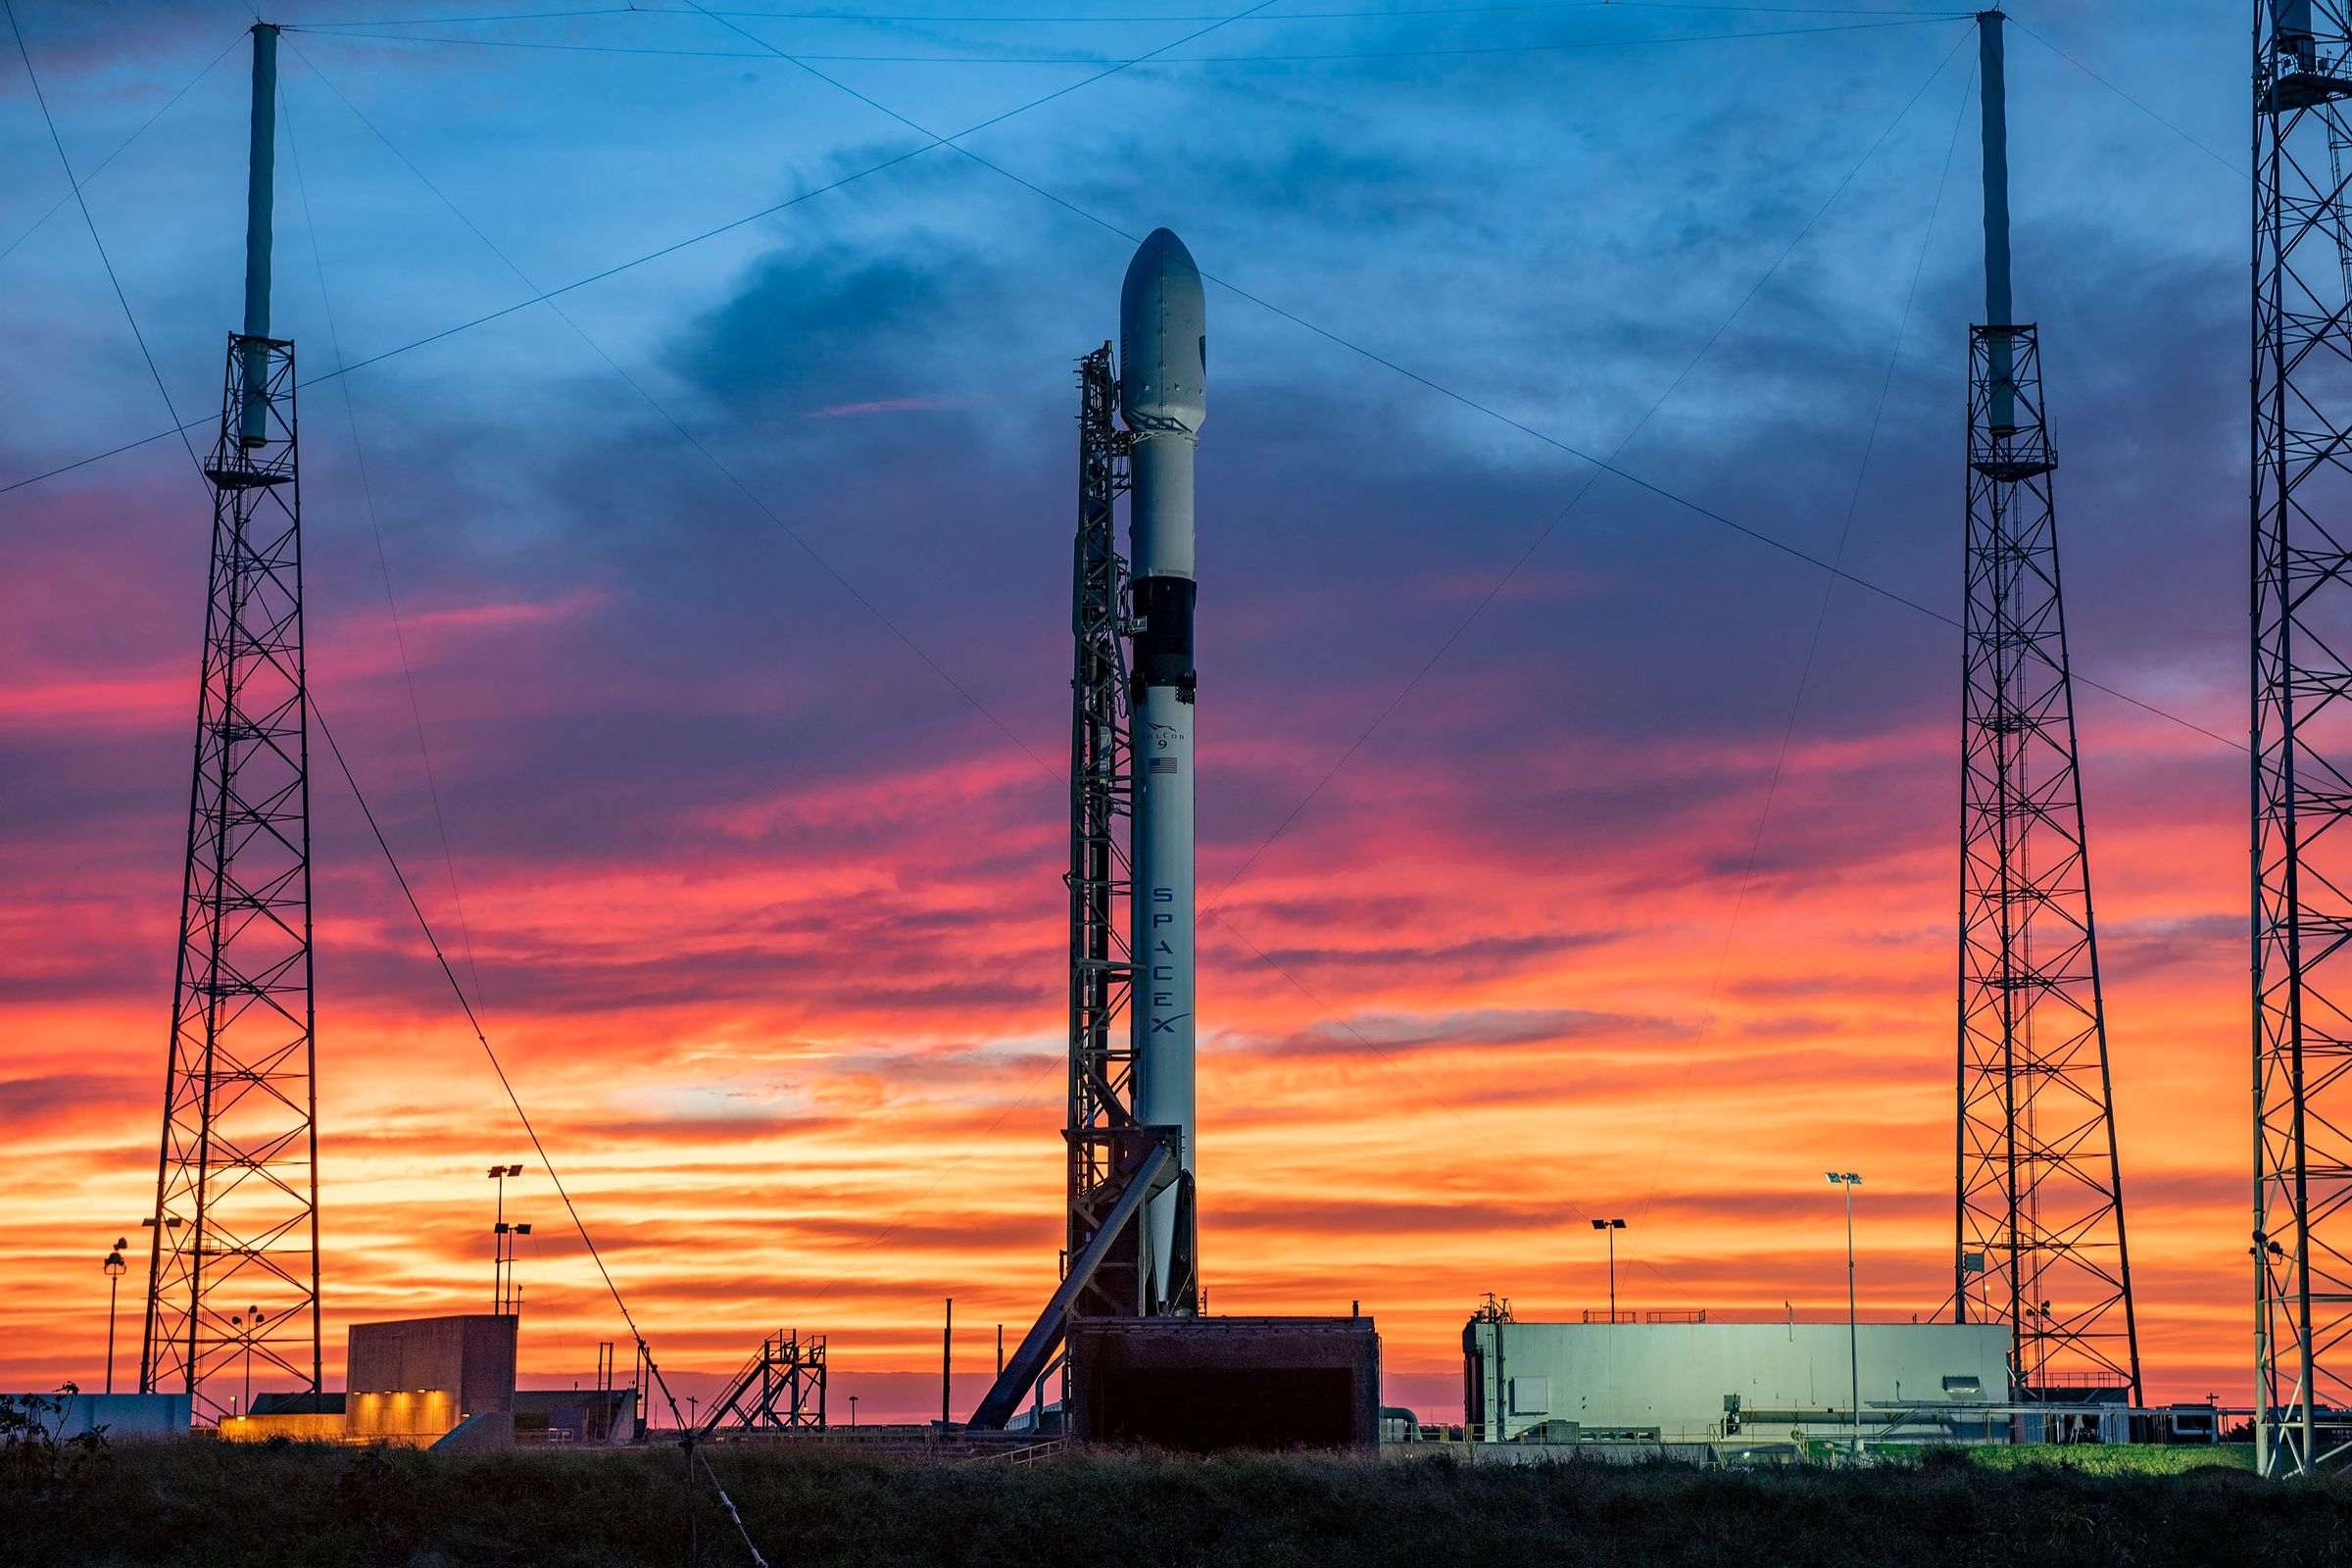 """<p>Фото © Twitter / <a href=""""https://twitter.com/SpaceX/status/1312031067197460480/photo/1"""" target=""""_blank"""" rel=""""noopener noreferrer"""">SpaceX</a></p>"""